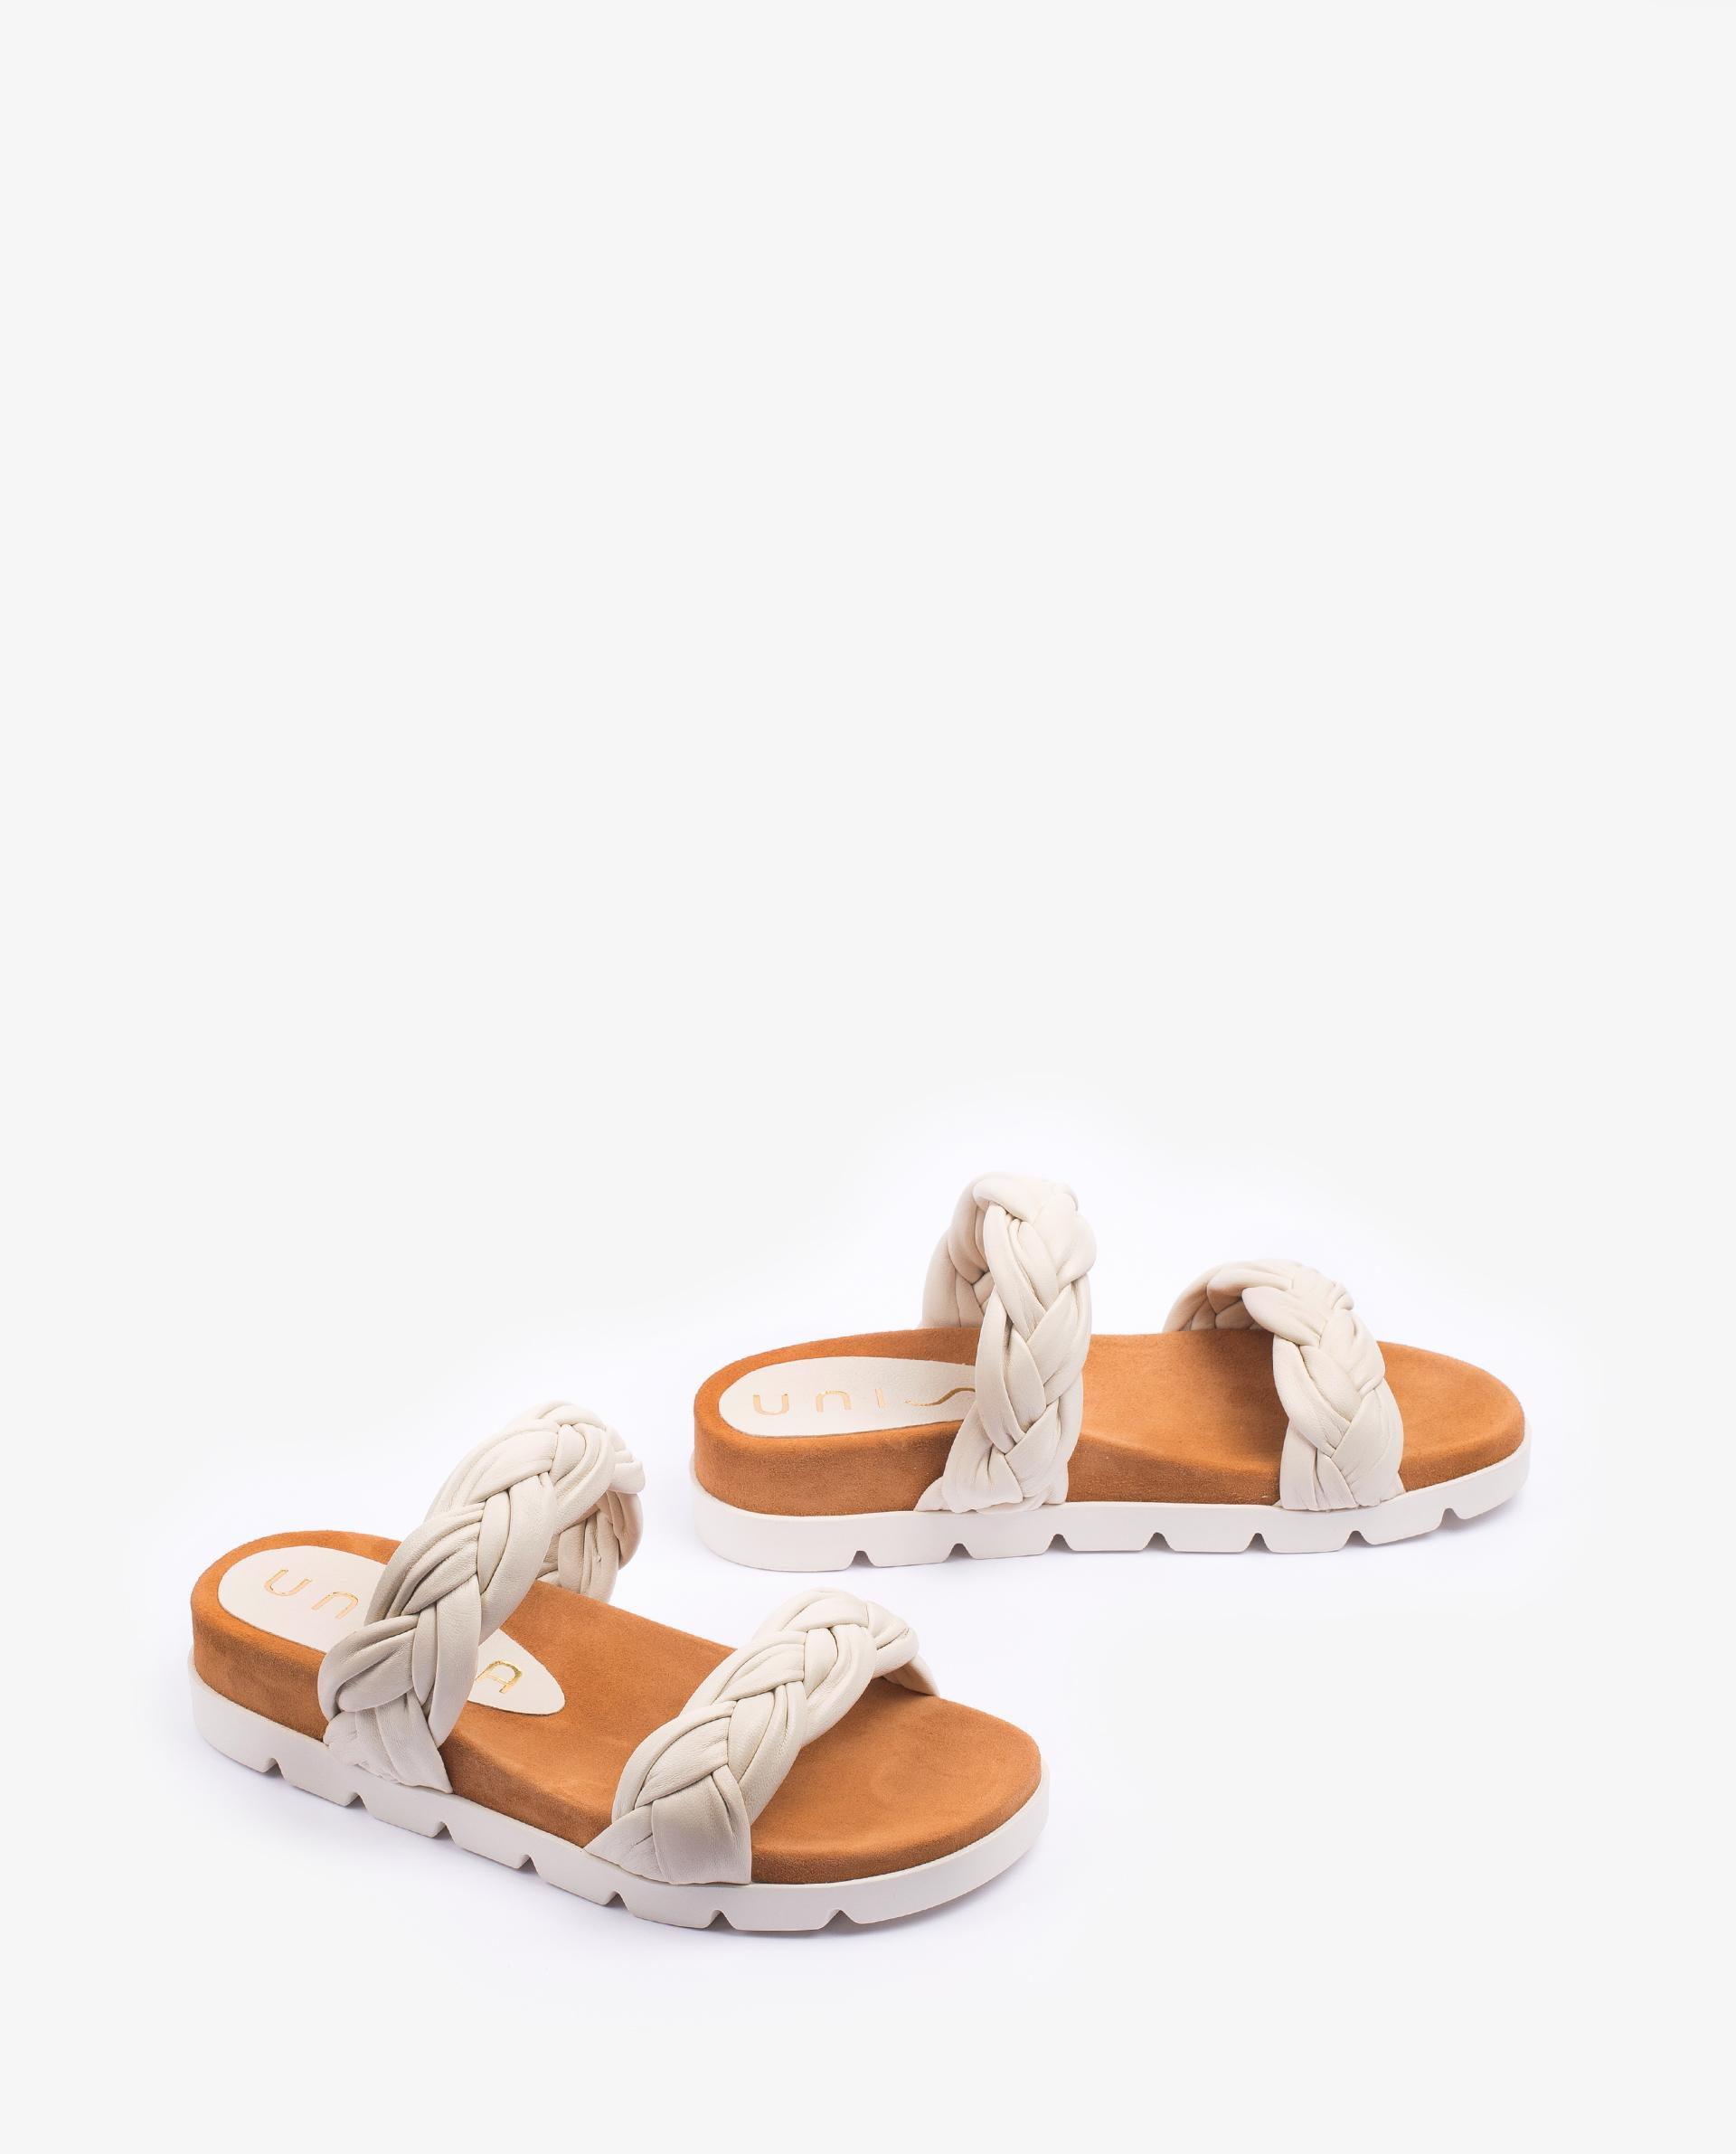 UNISA Flat leather sandals with braided straps CAIRO_NS 5